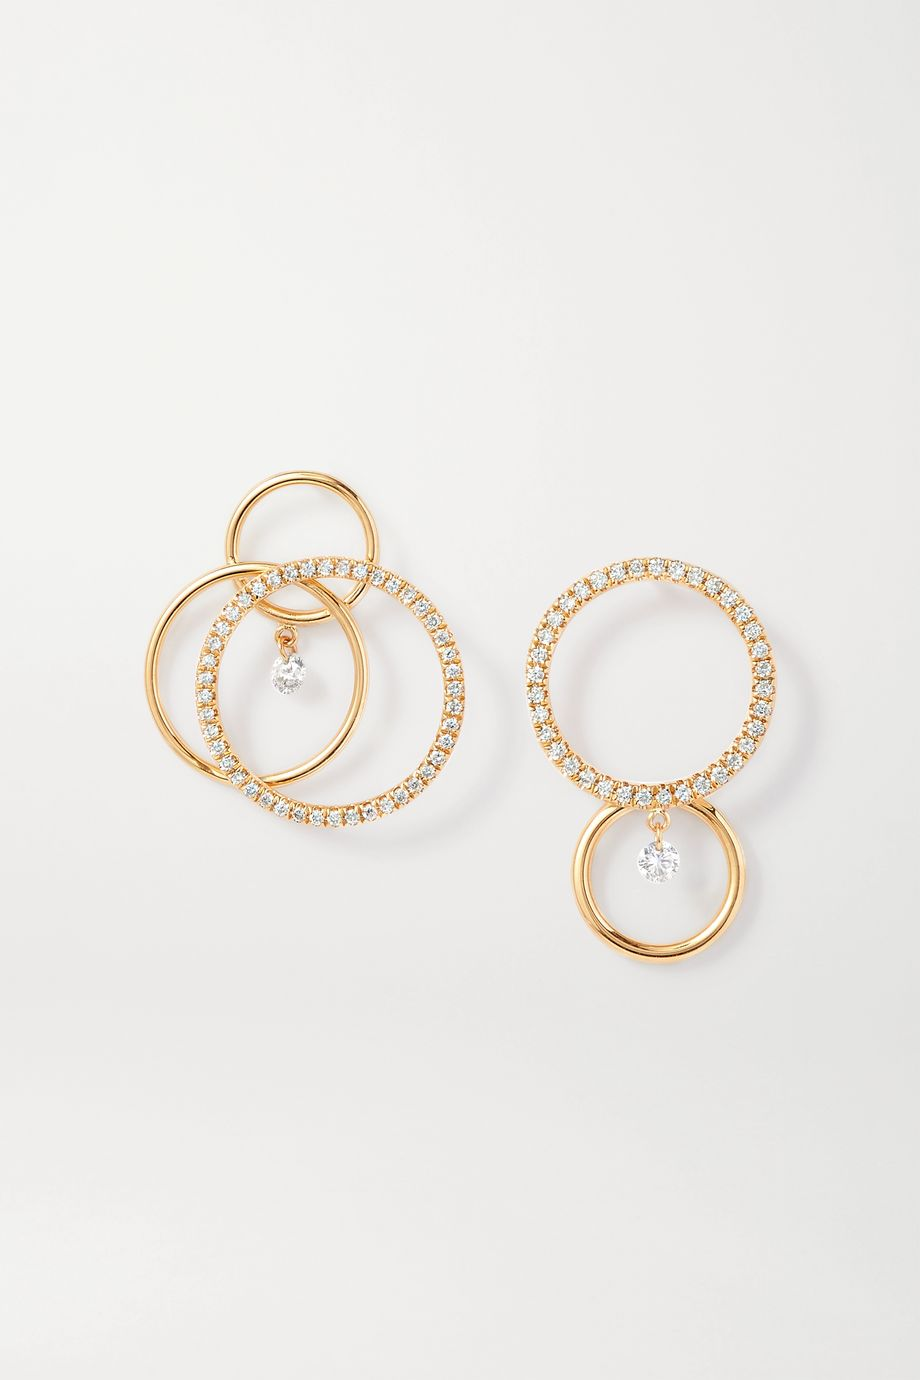 Persée Tourbillon + Bonnie & Clyde 18-karat gold diamond earrings